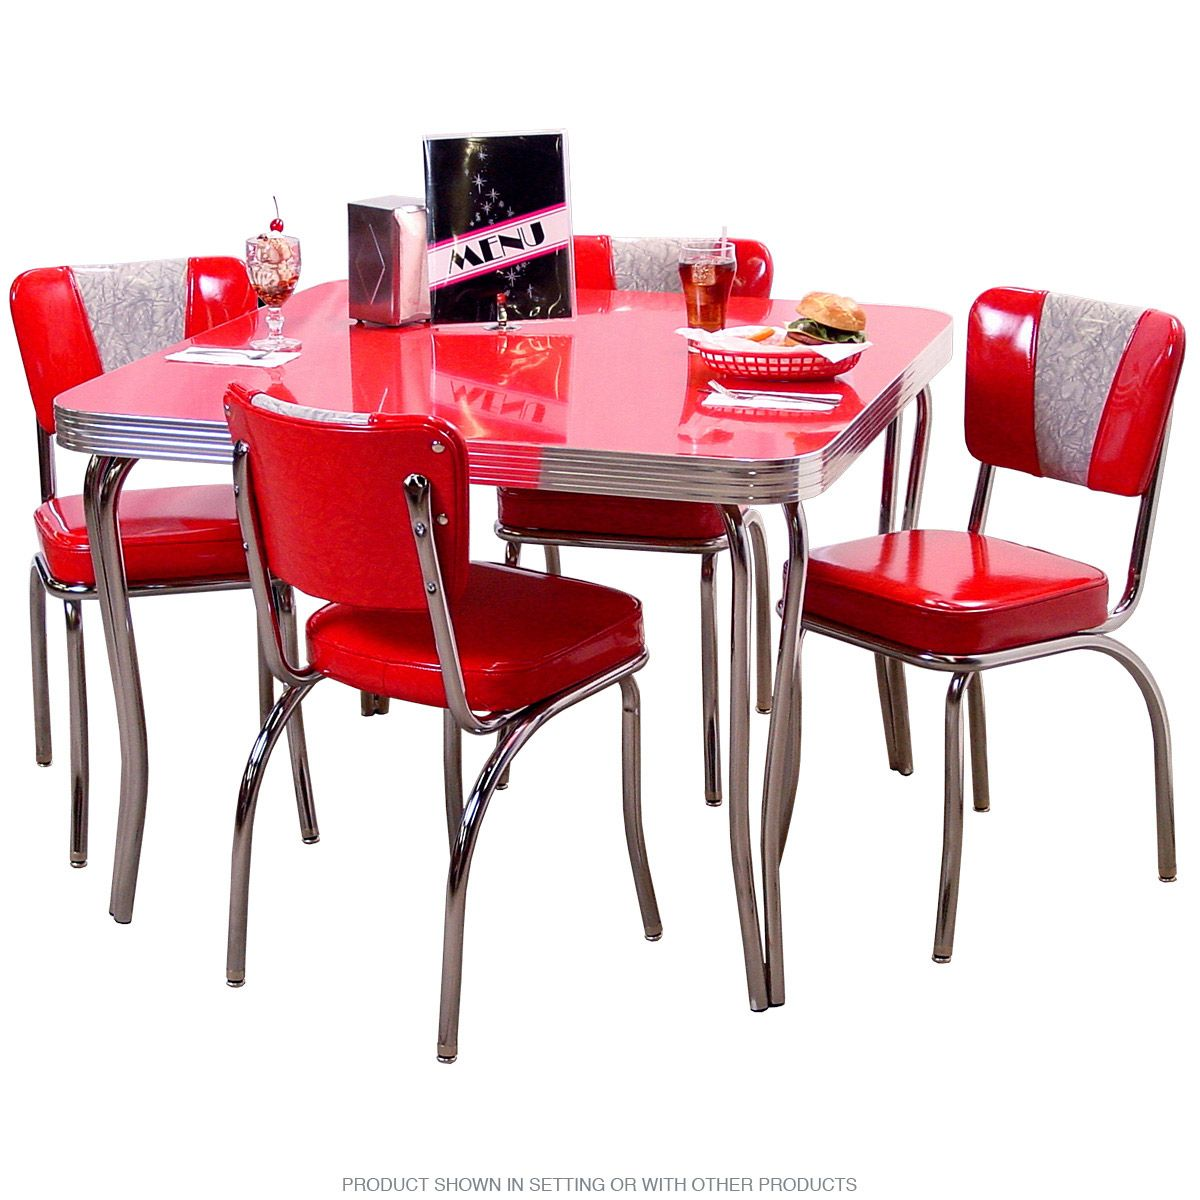 Commercial Grade Retro Kitchen Table With Chair Set Consists Of A